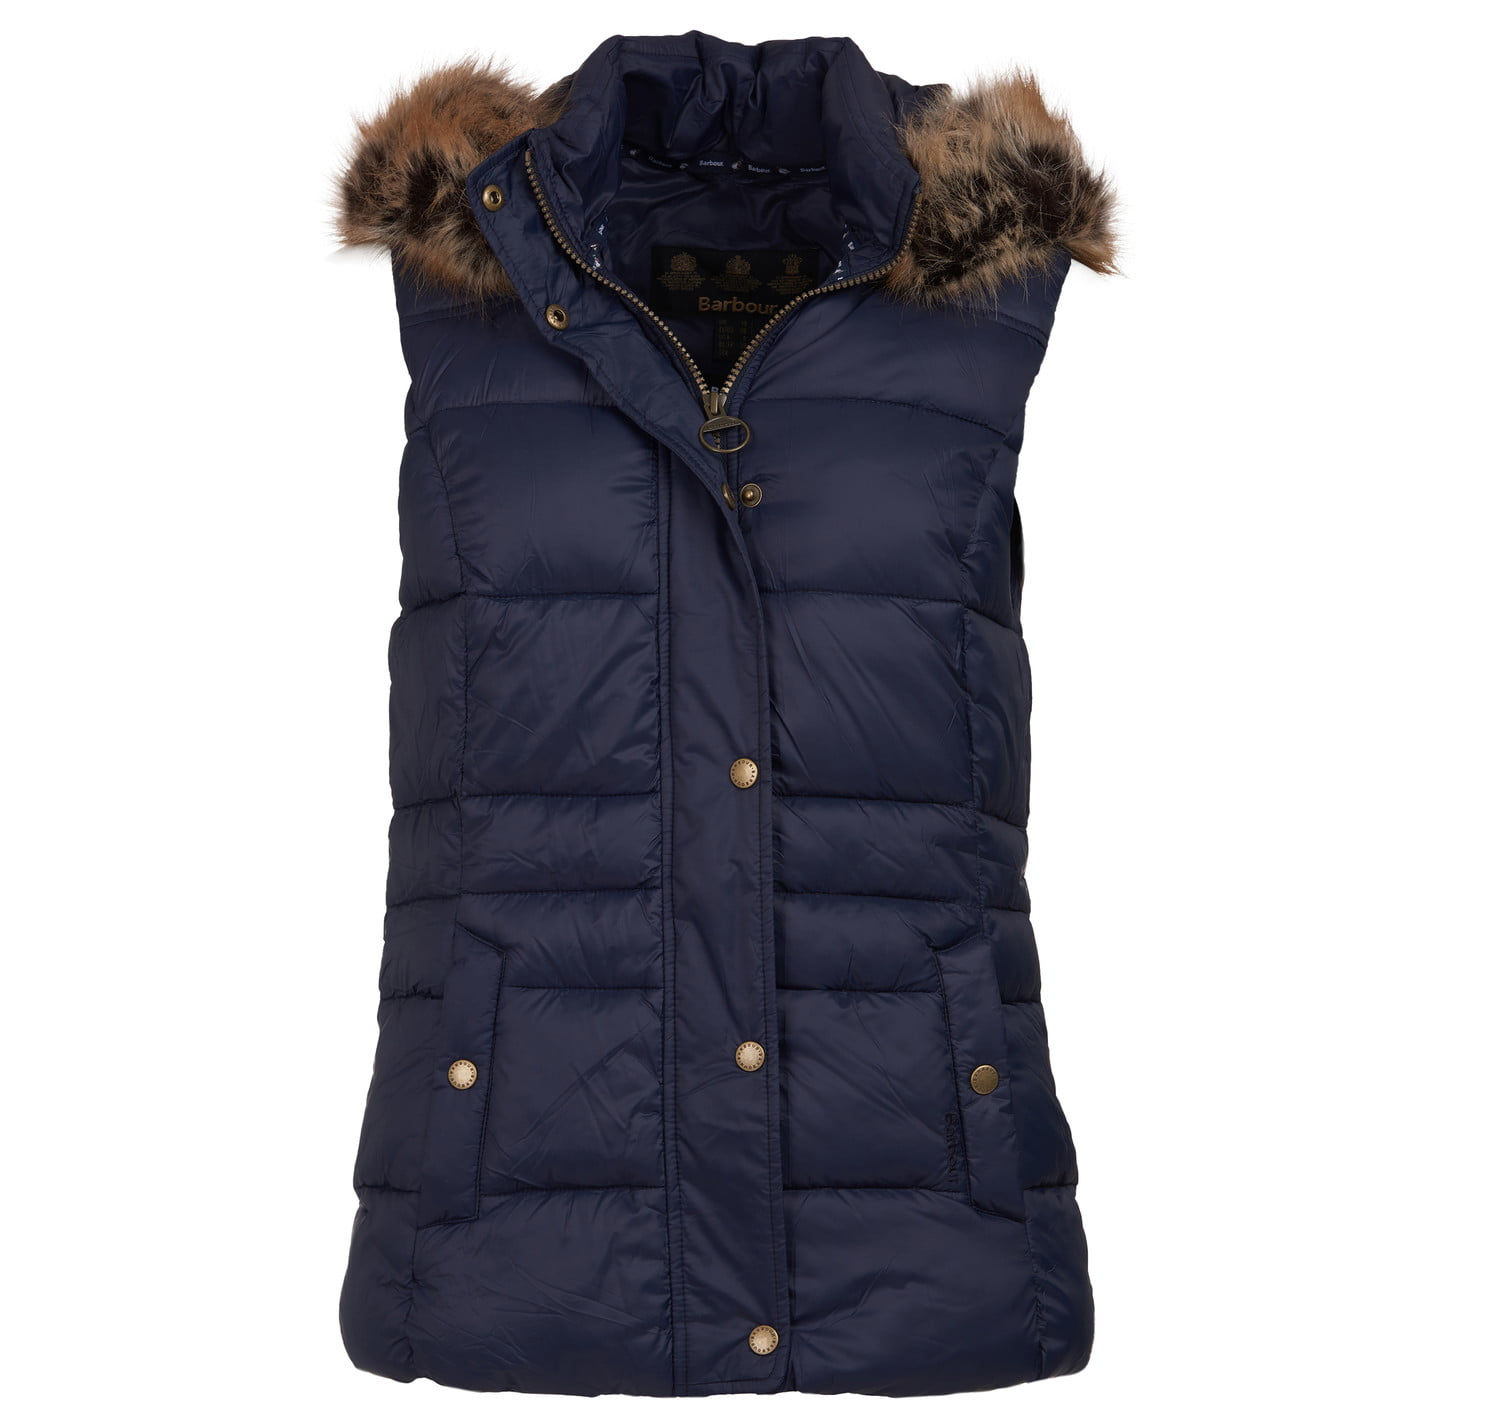 Barbour Ullswater Quilted Gilet Navy